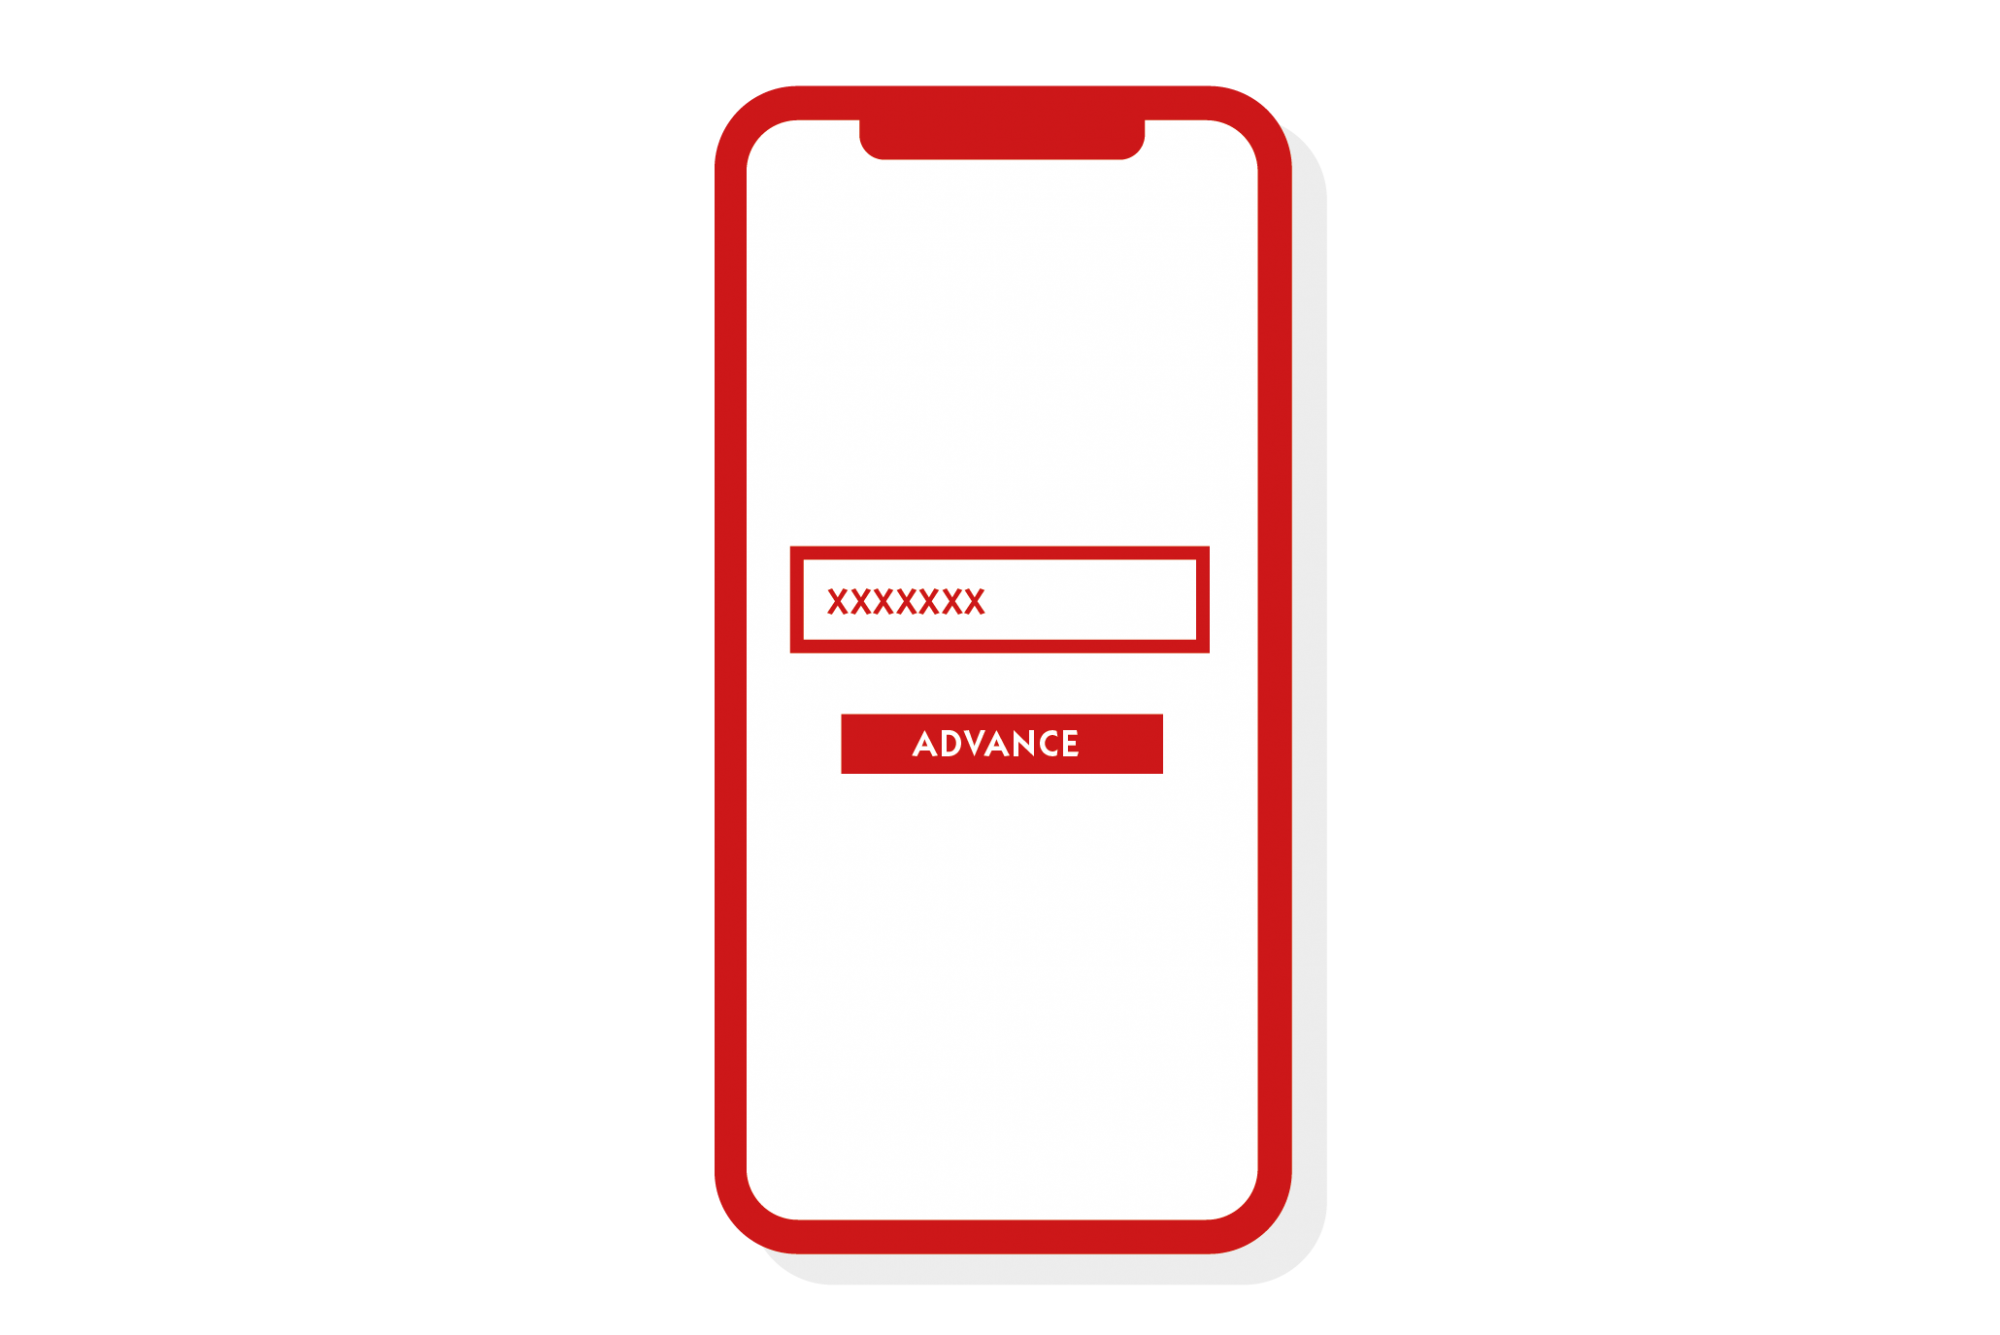 red illustrated phone icon